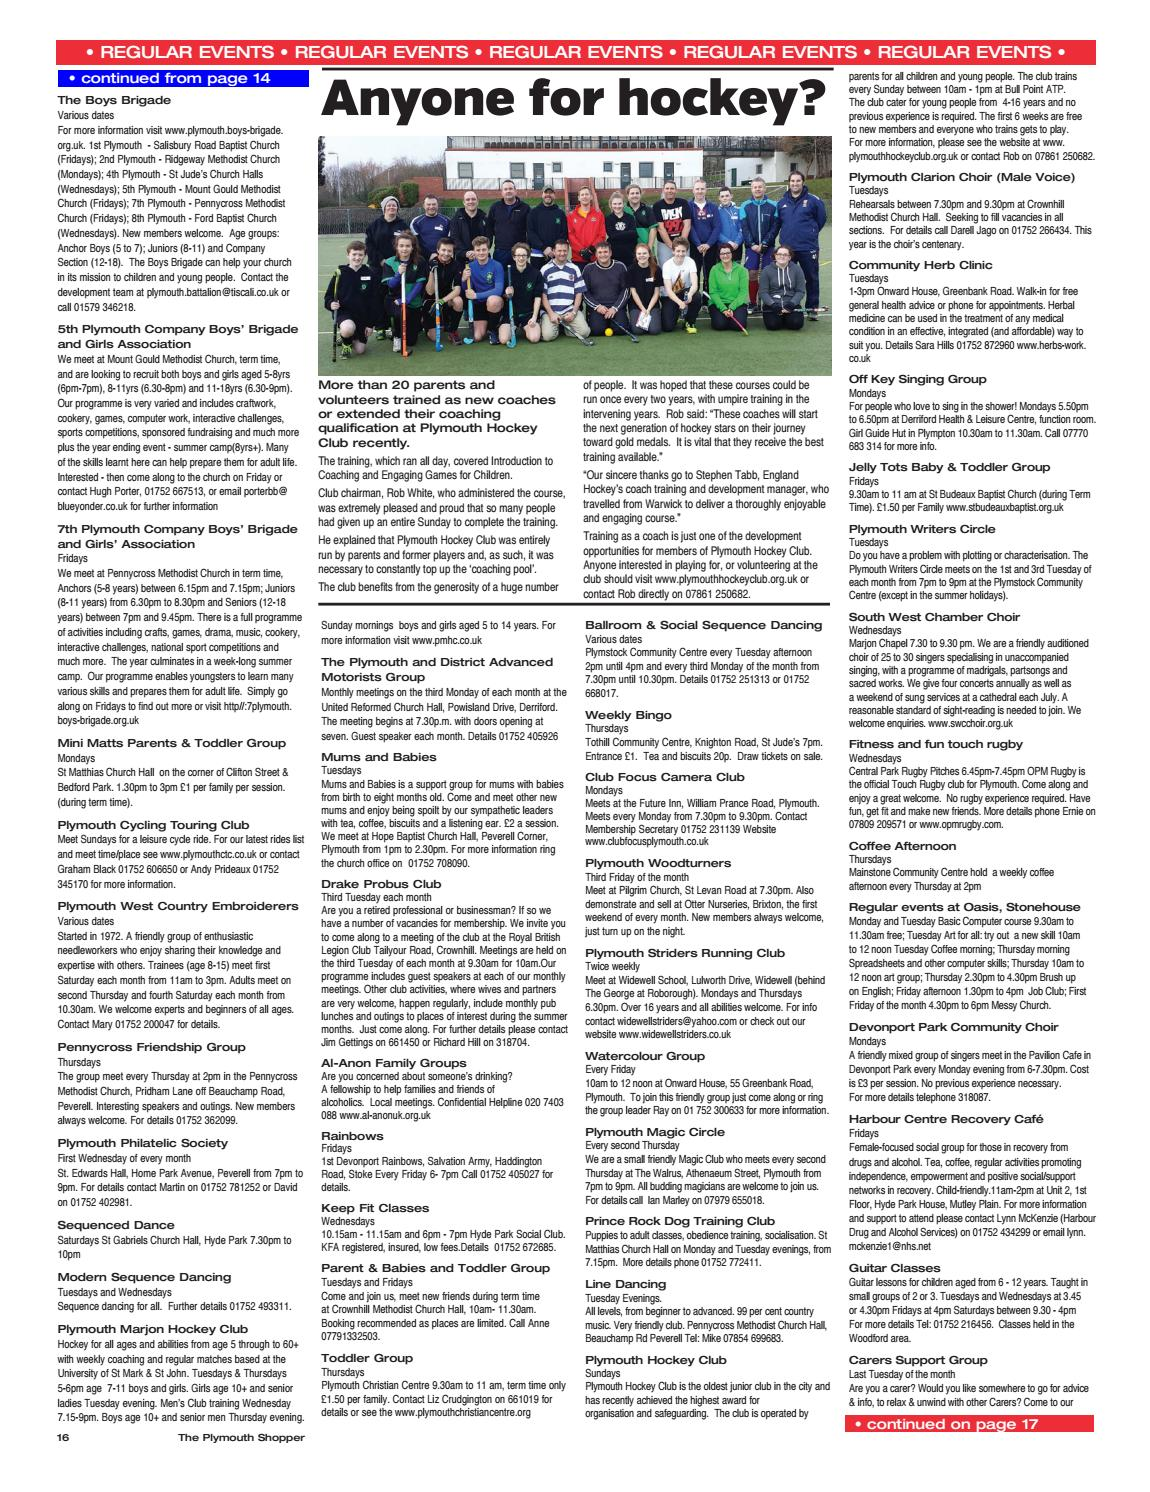 Plymouth Shopper March 2017 By Cornerstone Vision